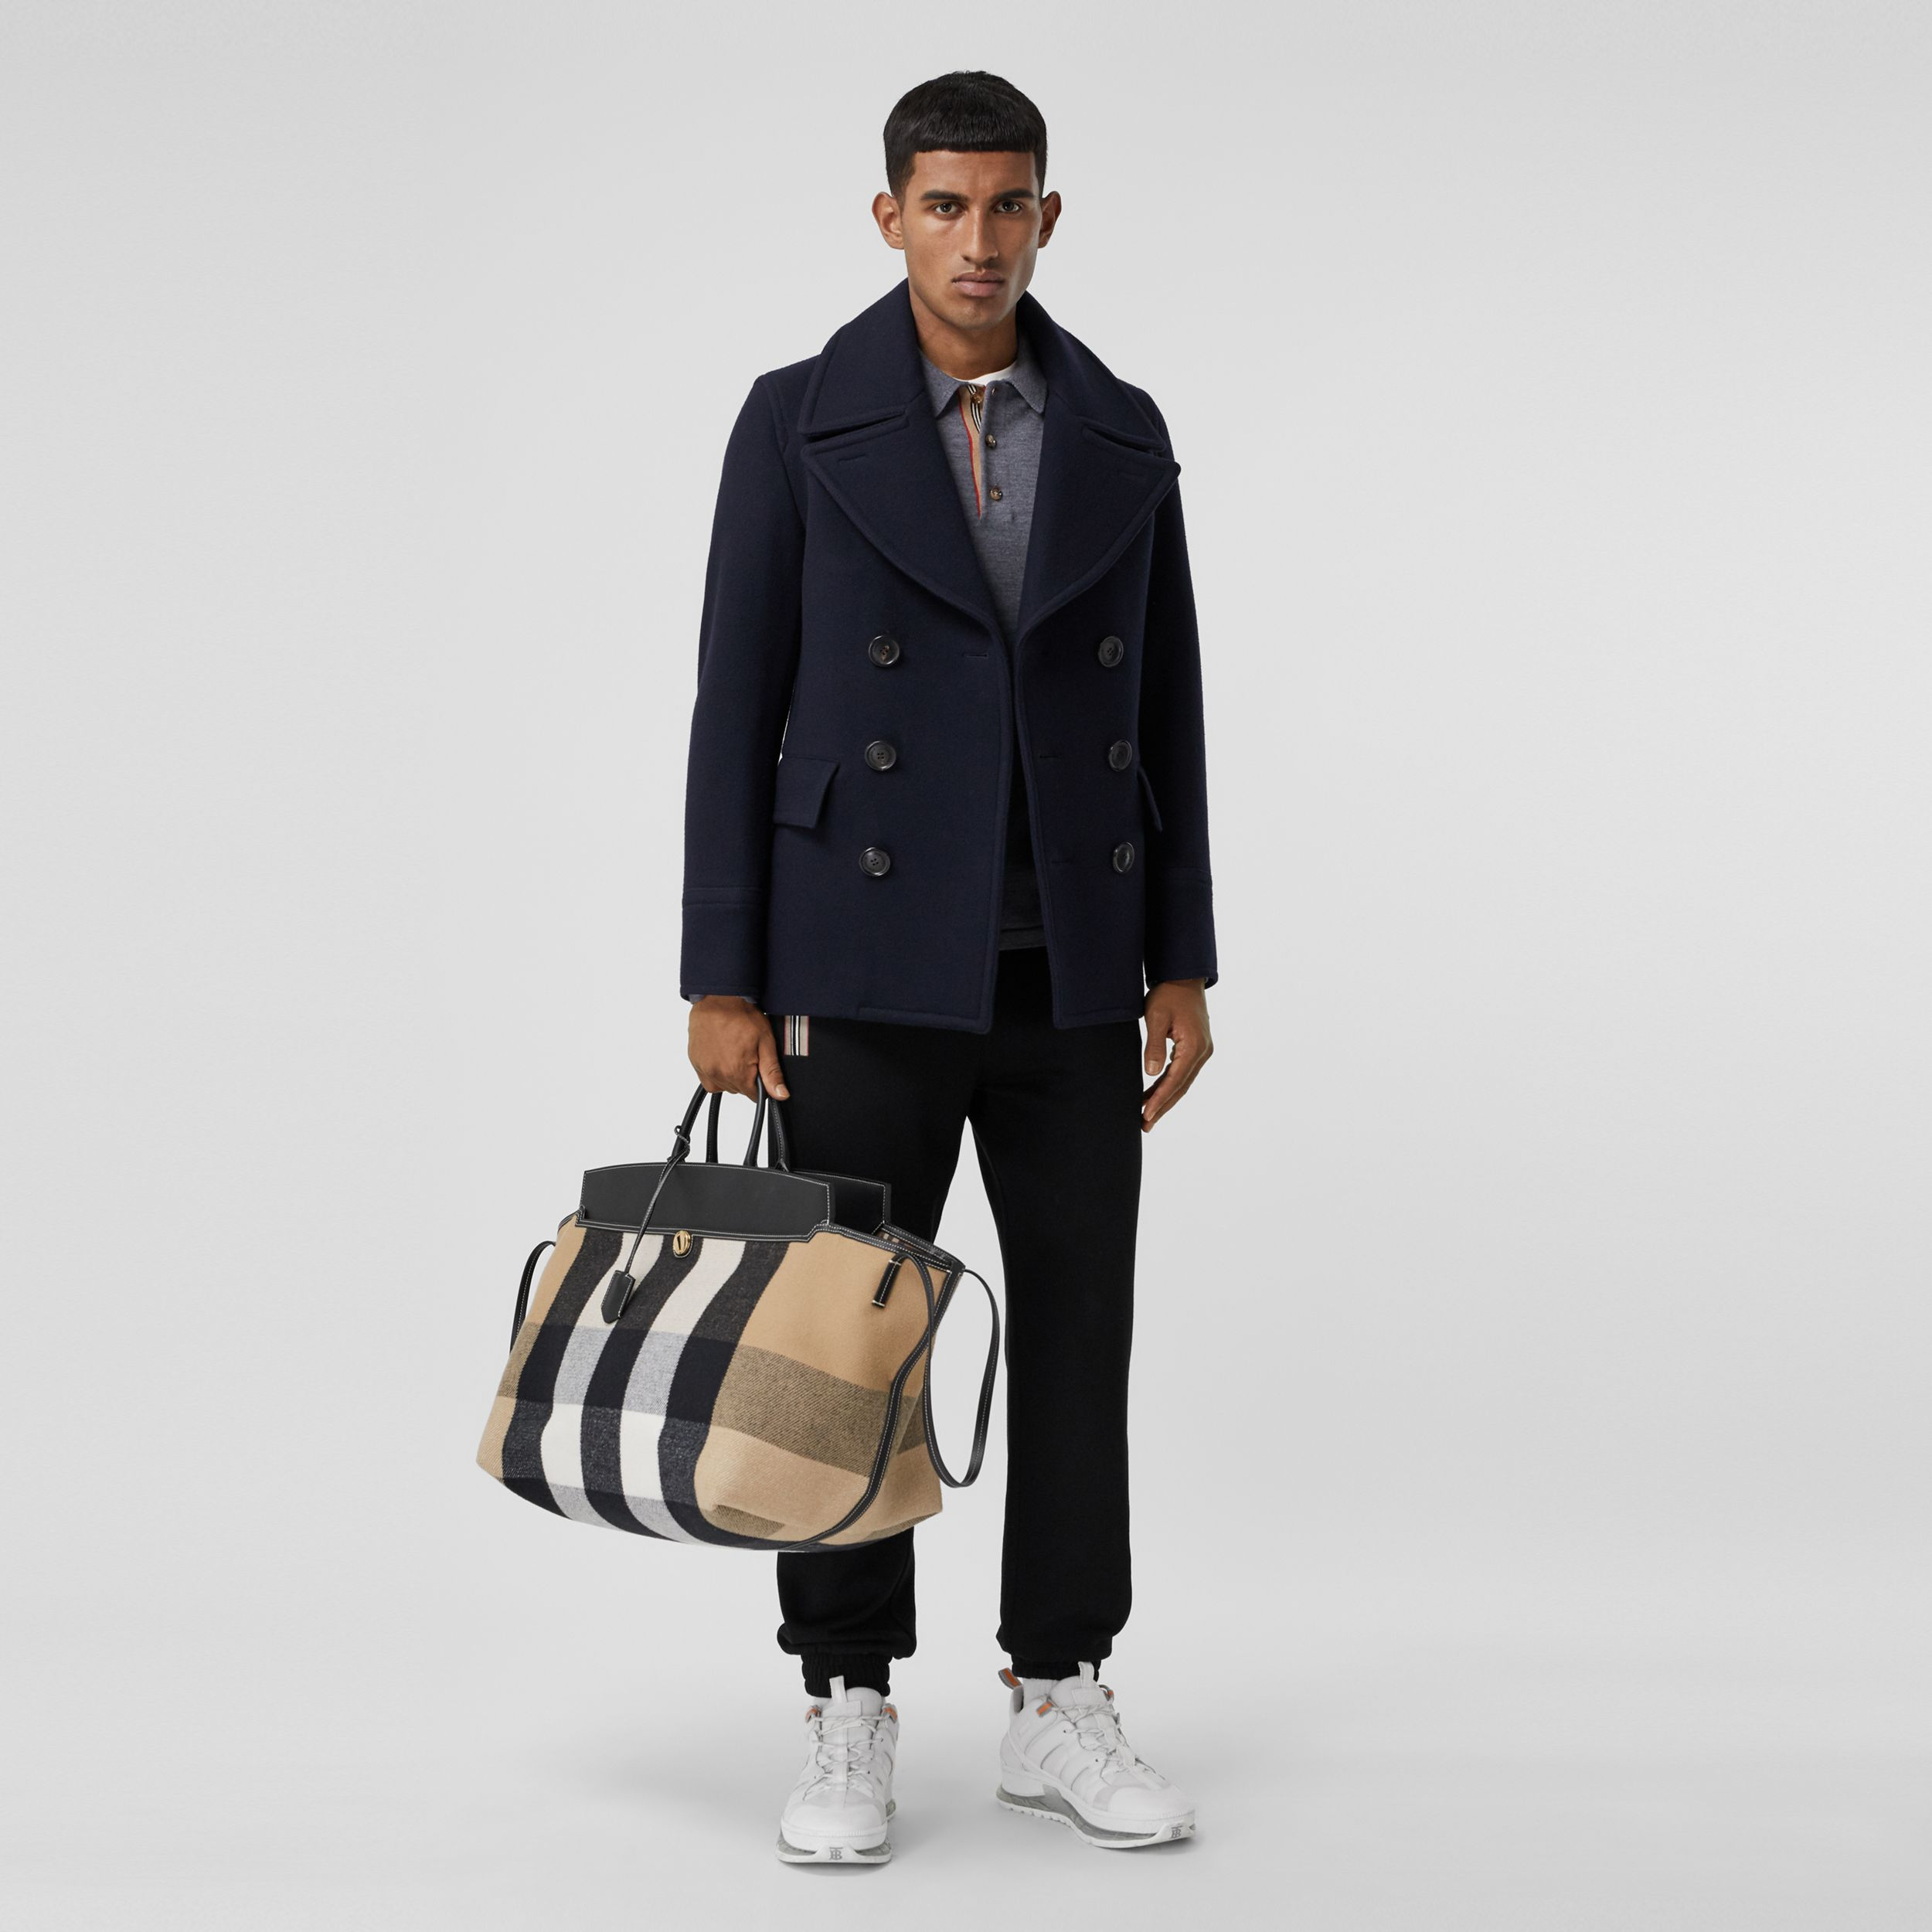 Wool Blend Pea Coat in Navy - Men | Burberry - 1